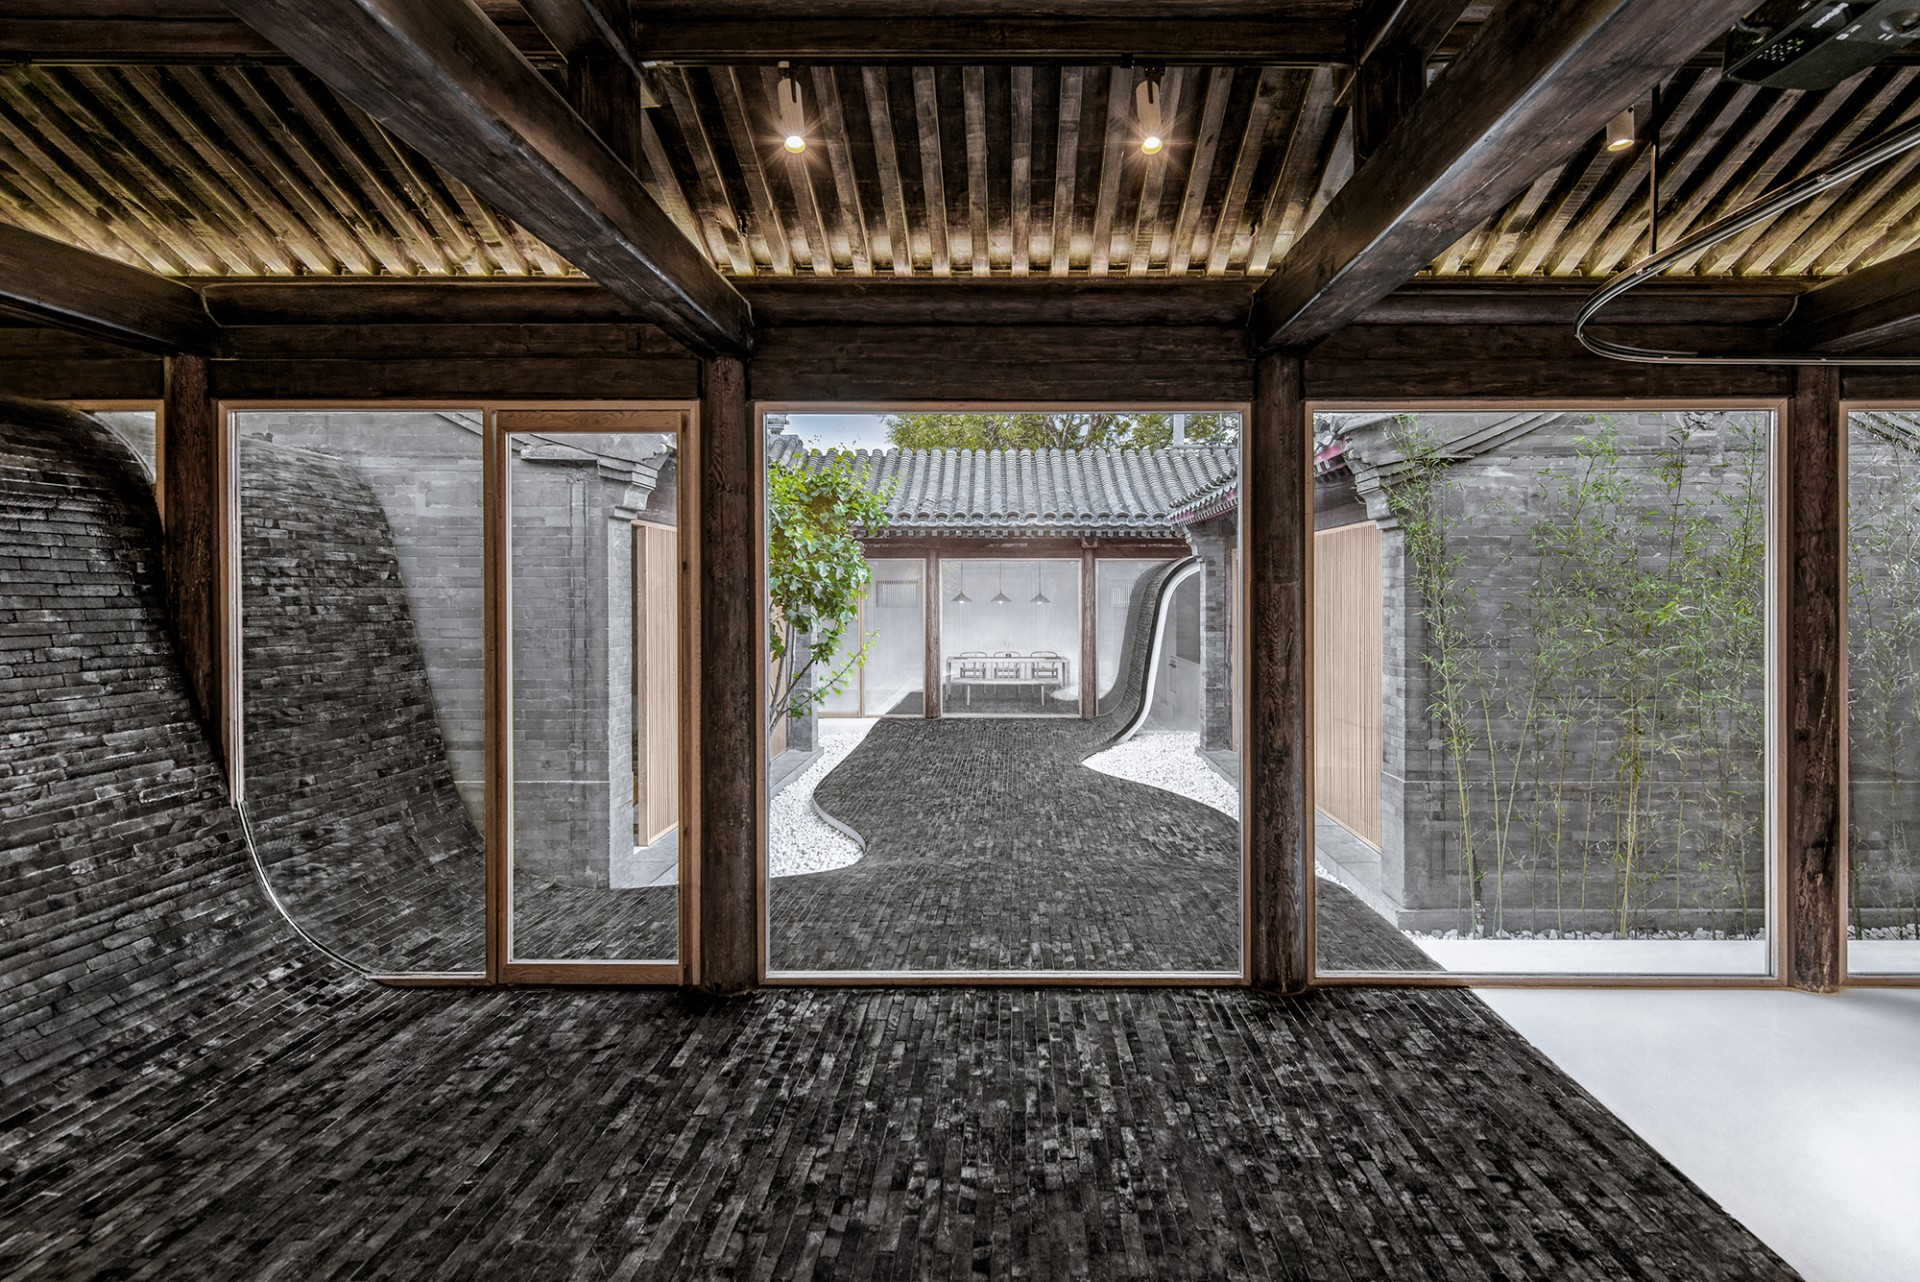 Three hotels in China: unique experiences reclaiming the past